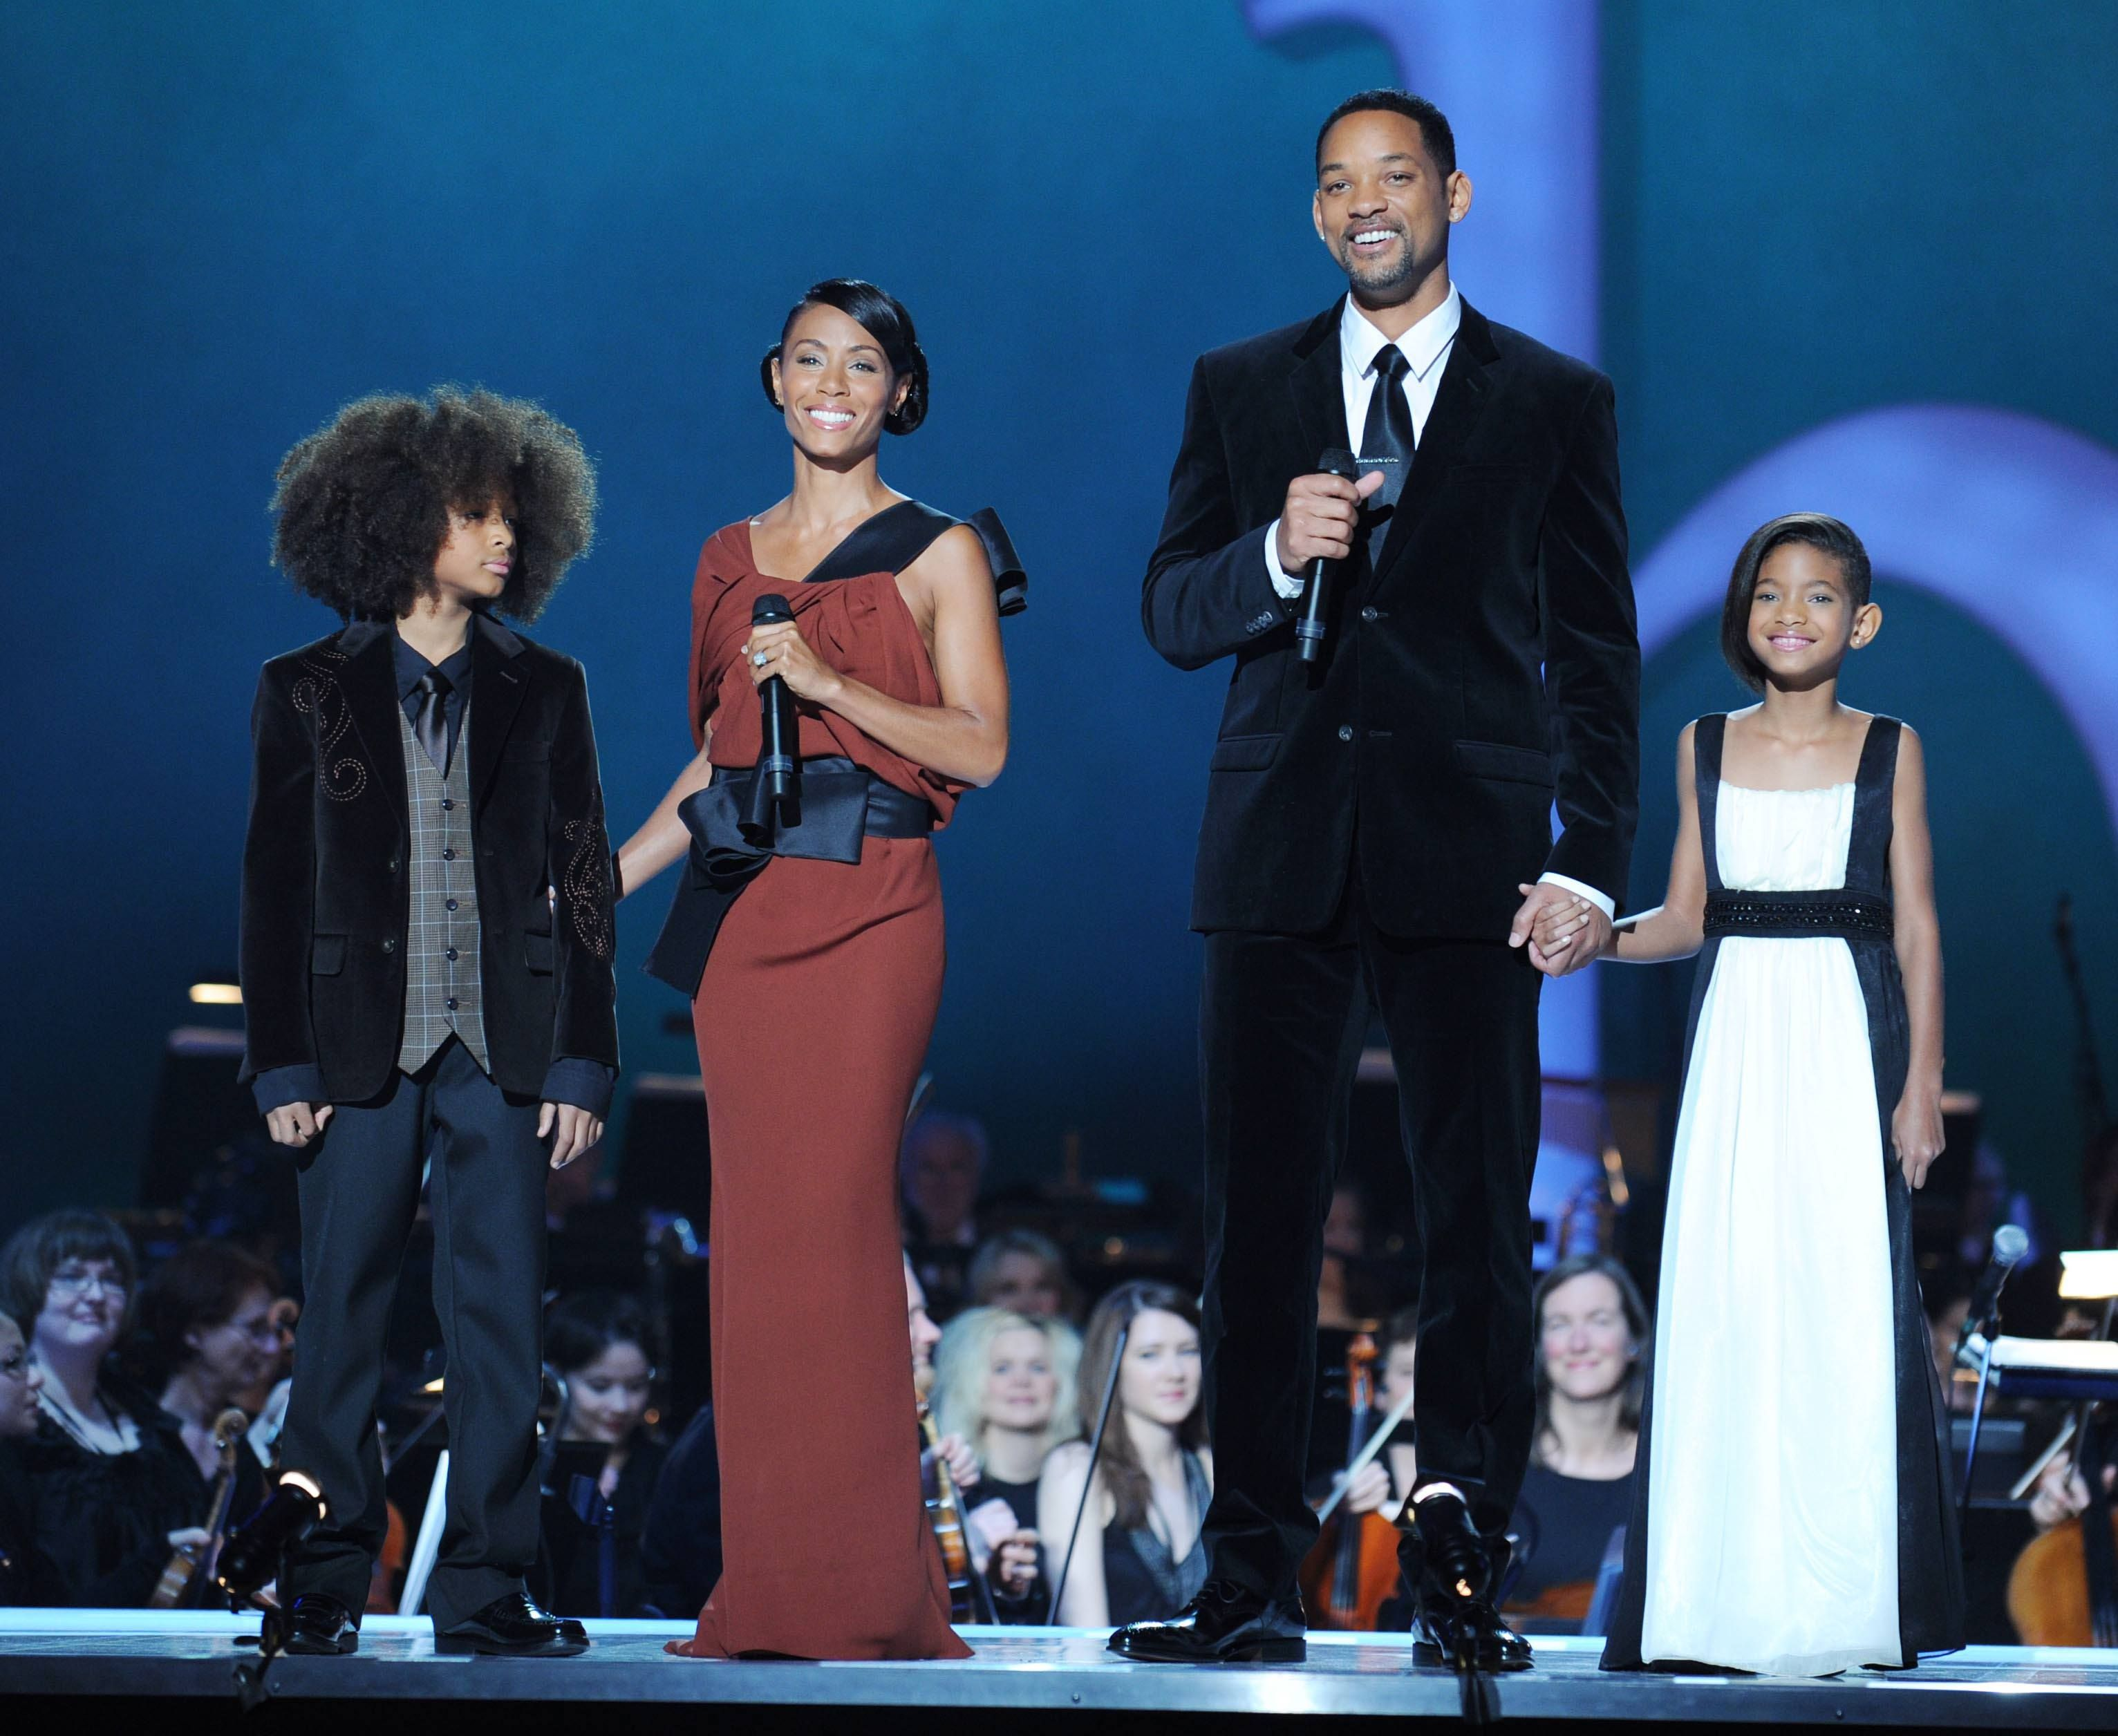 Jade Pinkett Smith and Will Smith with Jaden and Willow Smith at the Nobel Peace Prize Concert in 2009 in Oslo, Norway | Source: Getty Images